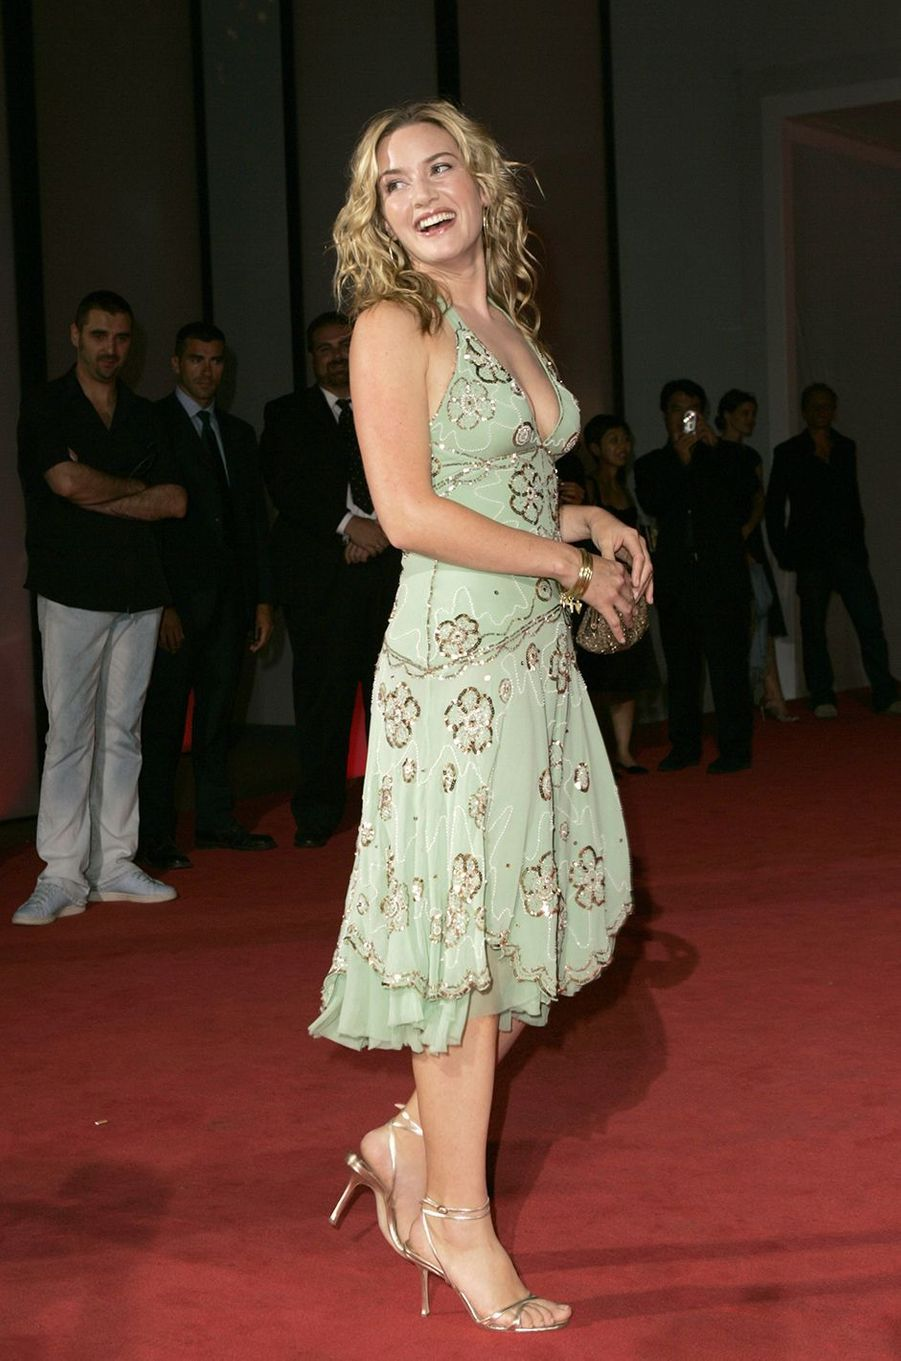 Kate Winslet à la présentation du film «Neverland» lors du Festival du film international de Venise en septembre 2004